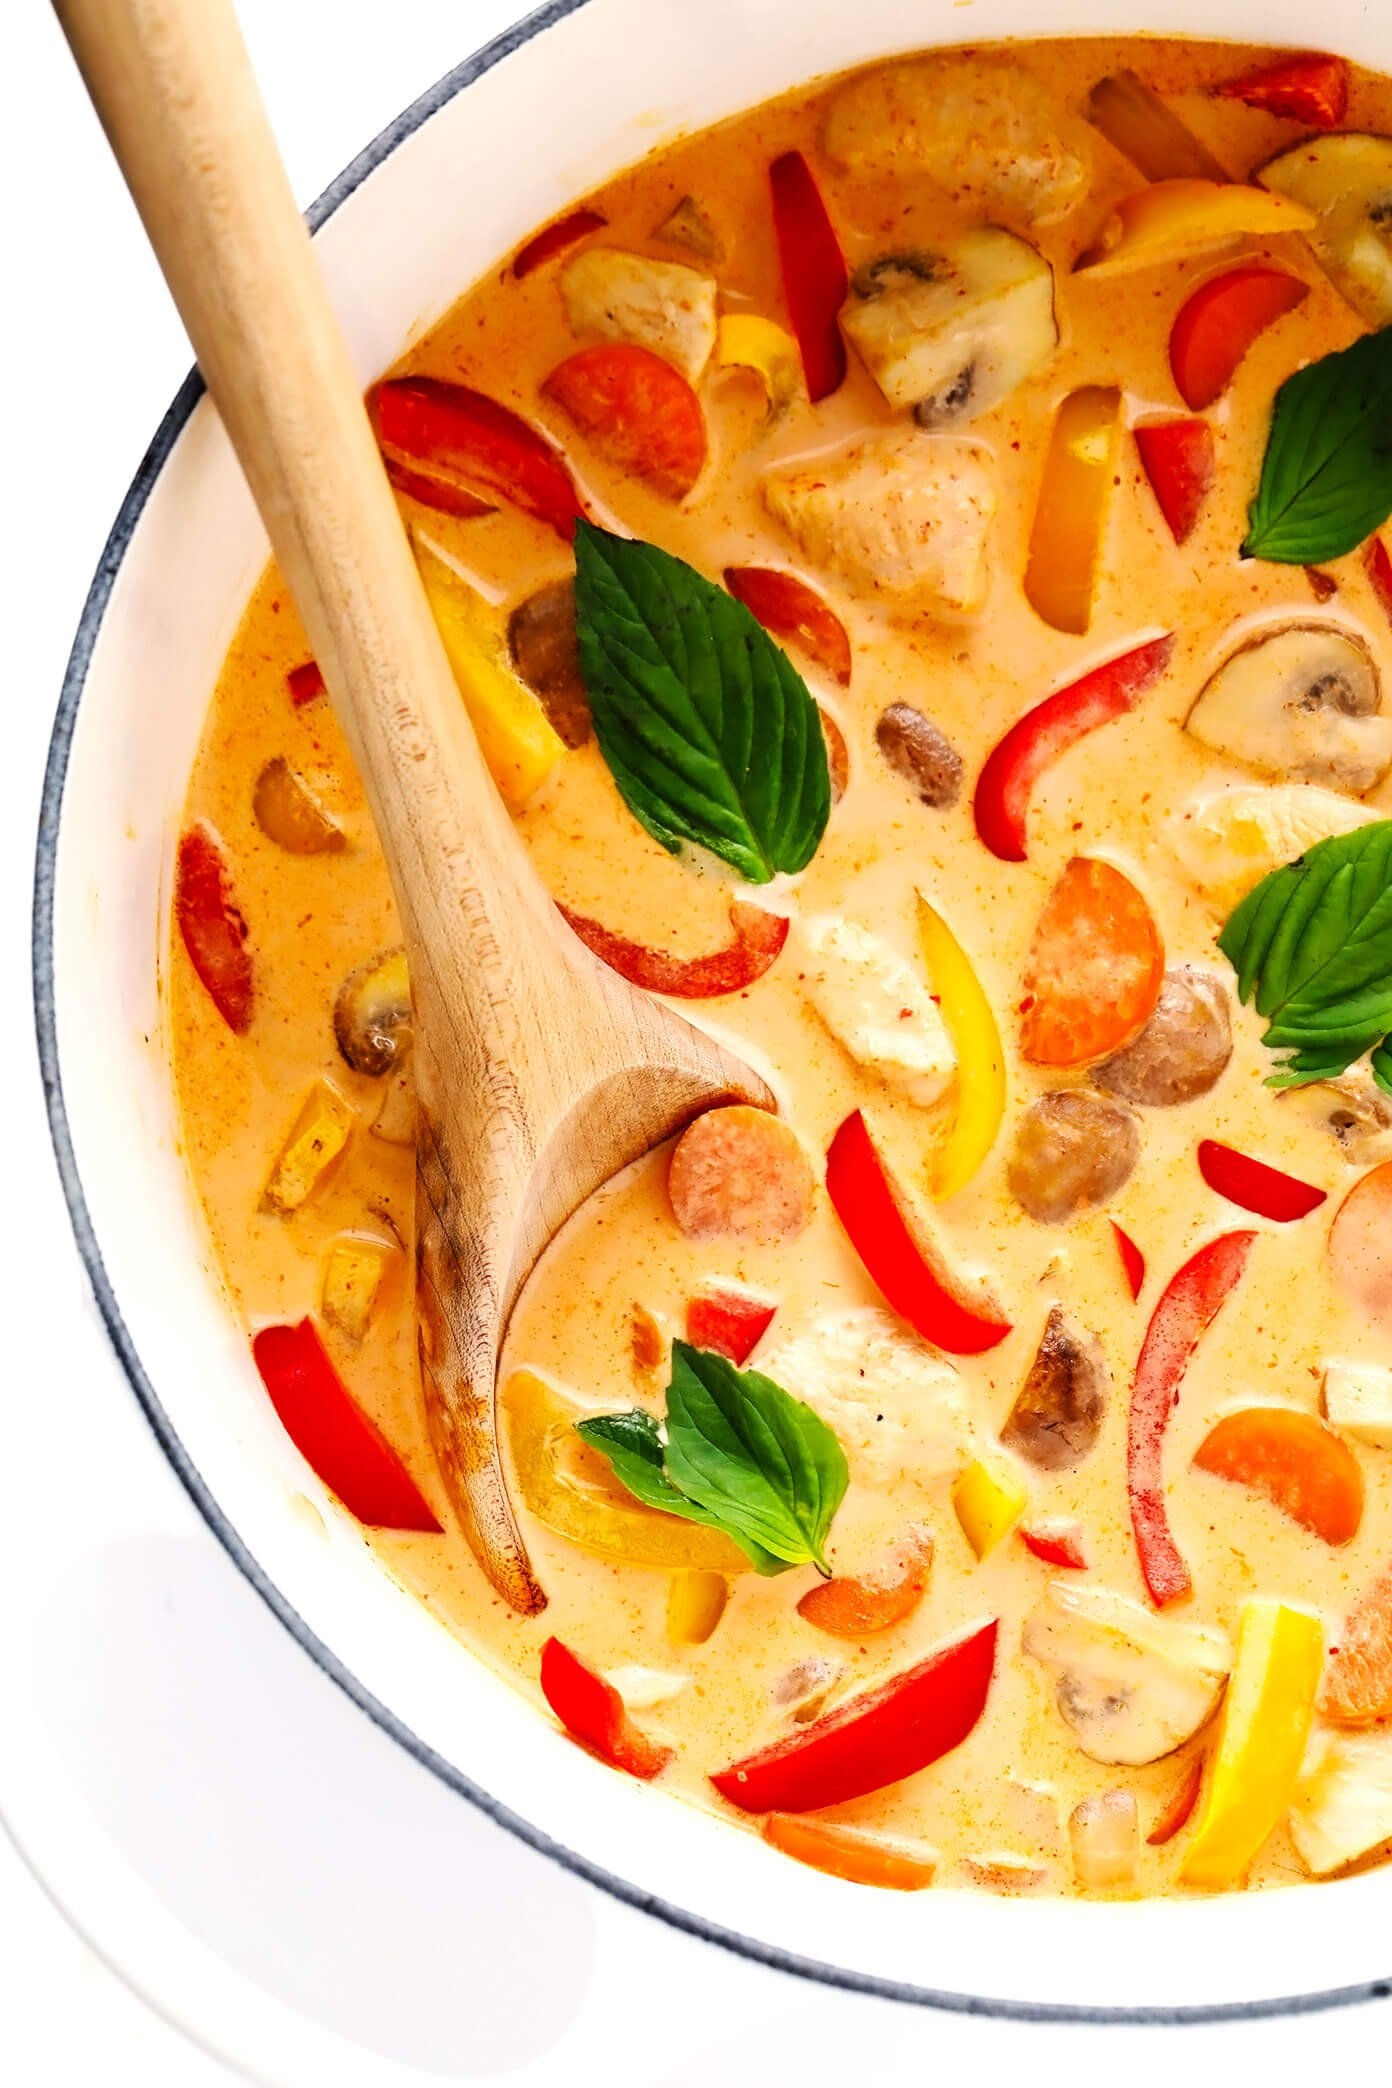 Thai Red Curry with Chicken in Stockpot